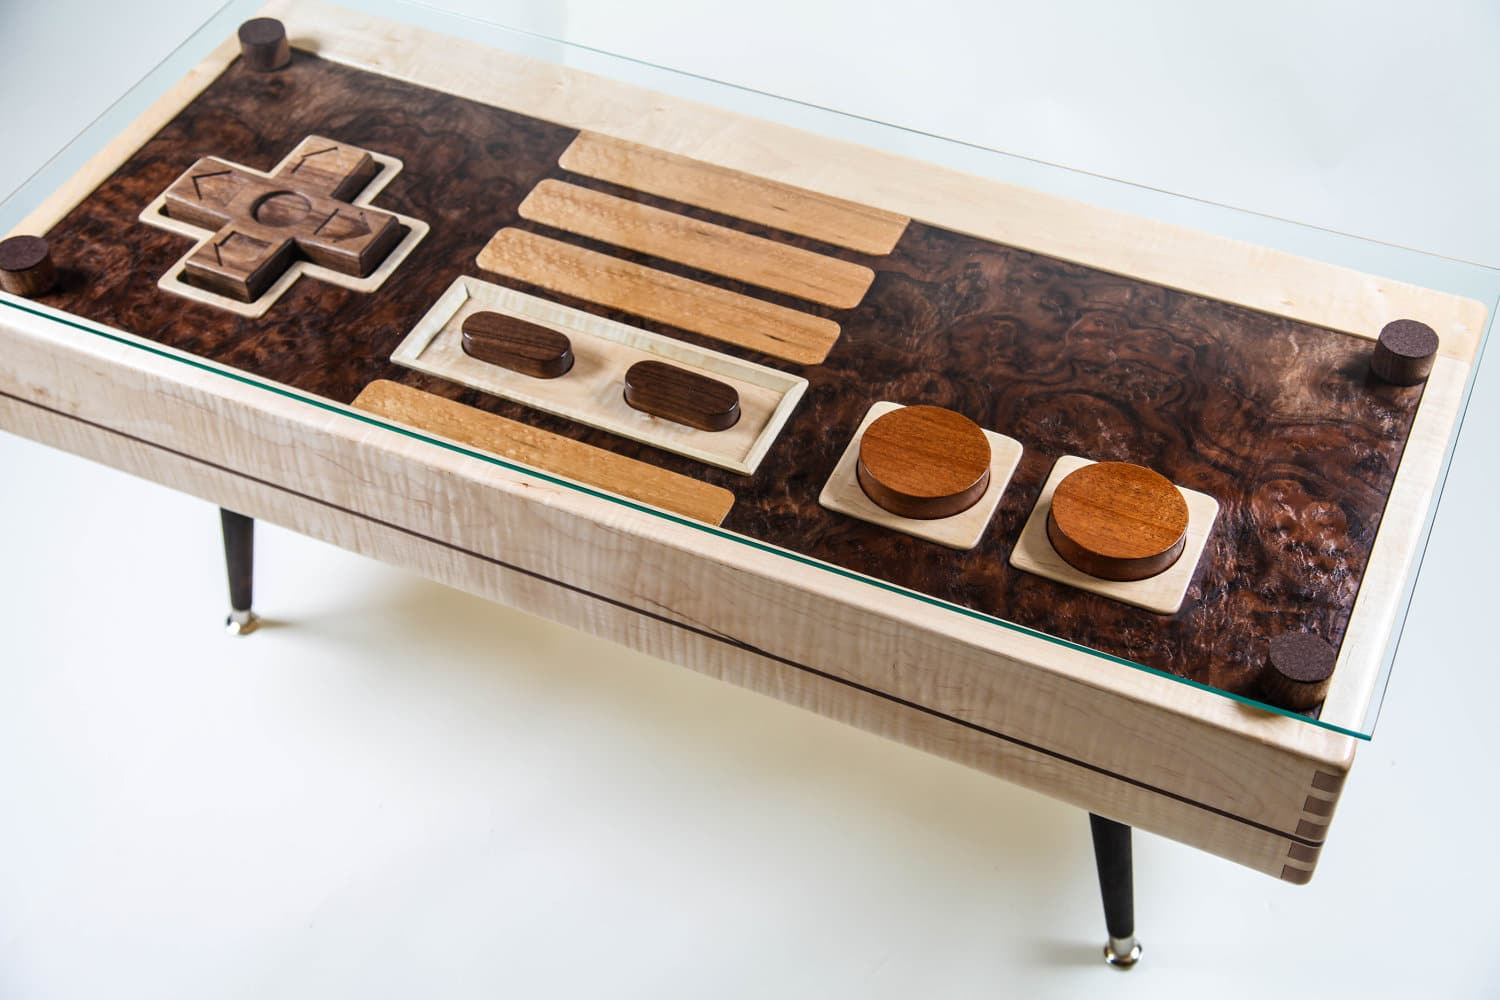 Functional Wooden NES Controller Coffee Table Available For $3,700